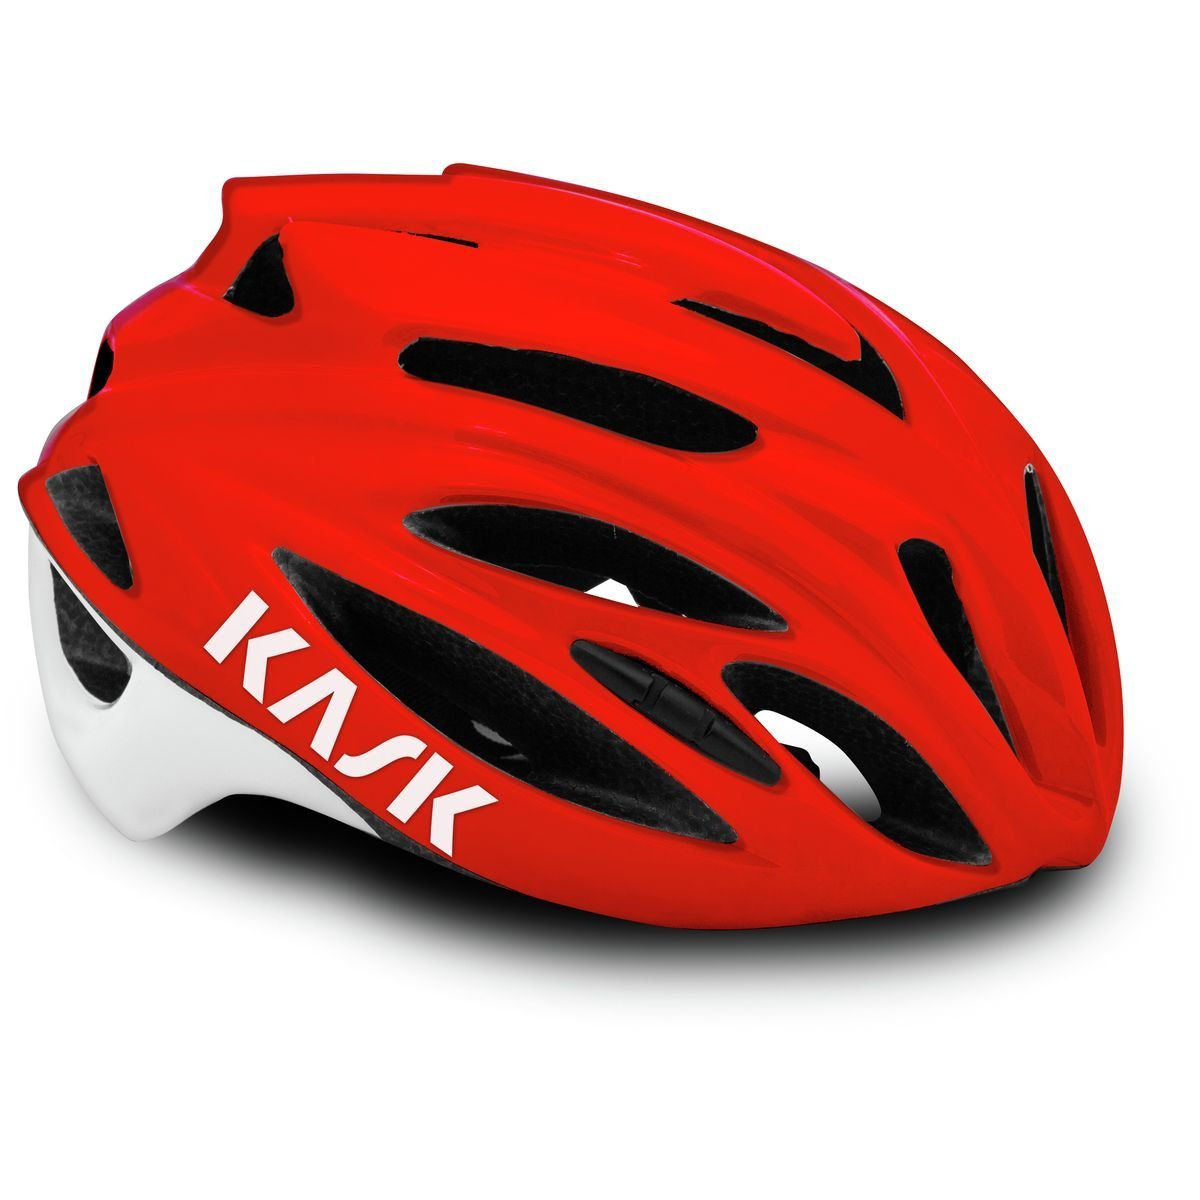 Red Kask Bicycle Helmets